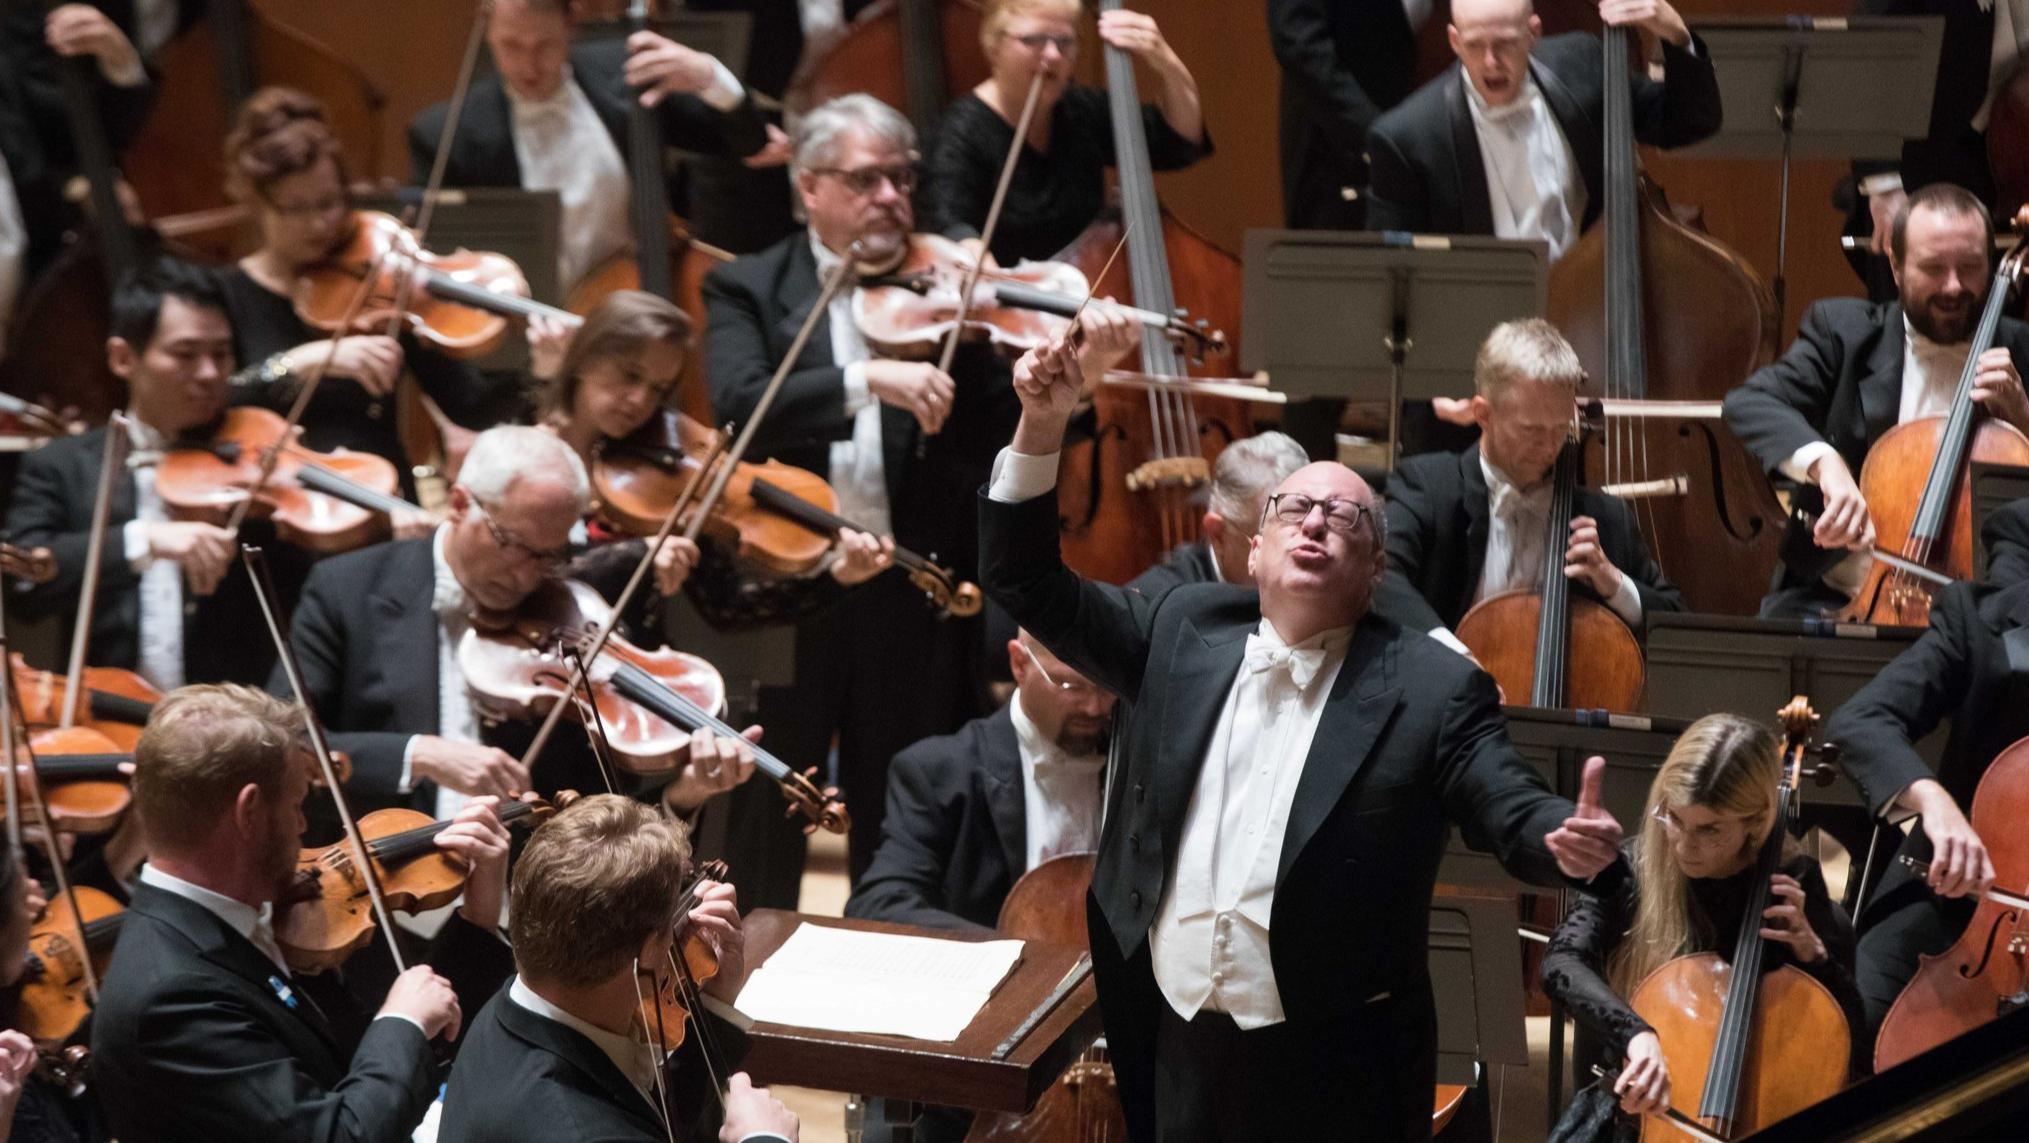 Review: Gerstein, Spano bring the unexpected to ASO season opener